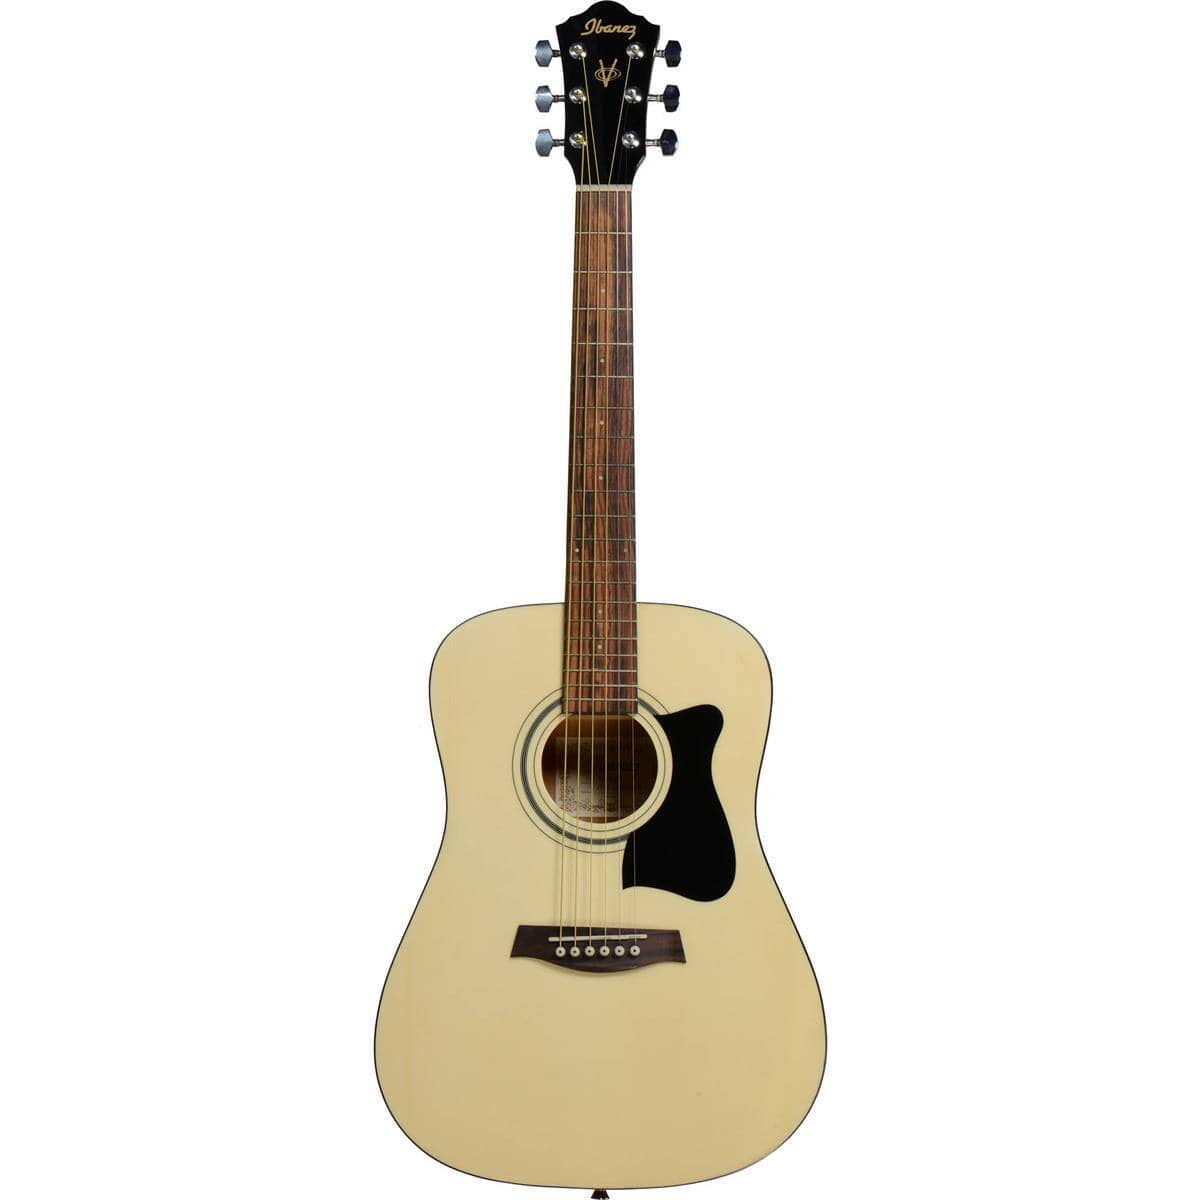 Ibanez Jampack IJV30 3/4 Size Dreadnought Acoustic Guitar w/ Gig Bag $99 + free s/h at Adorama